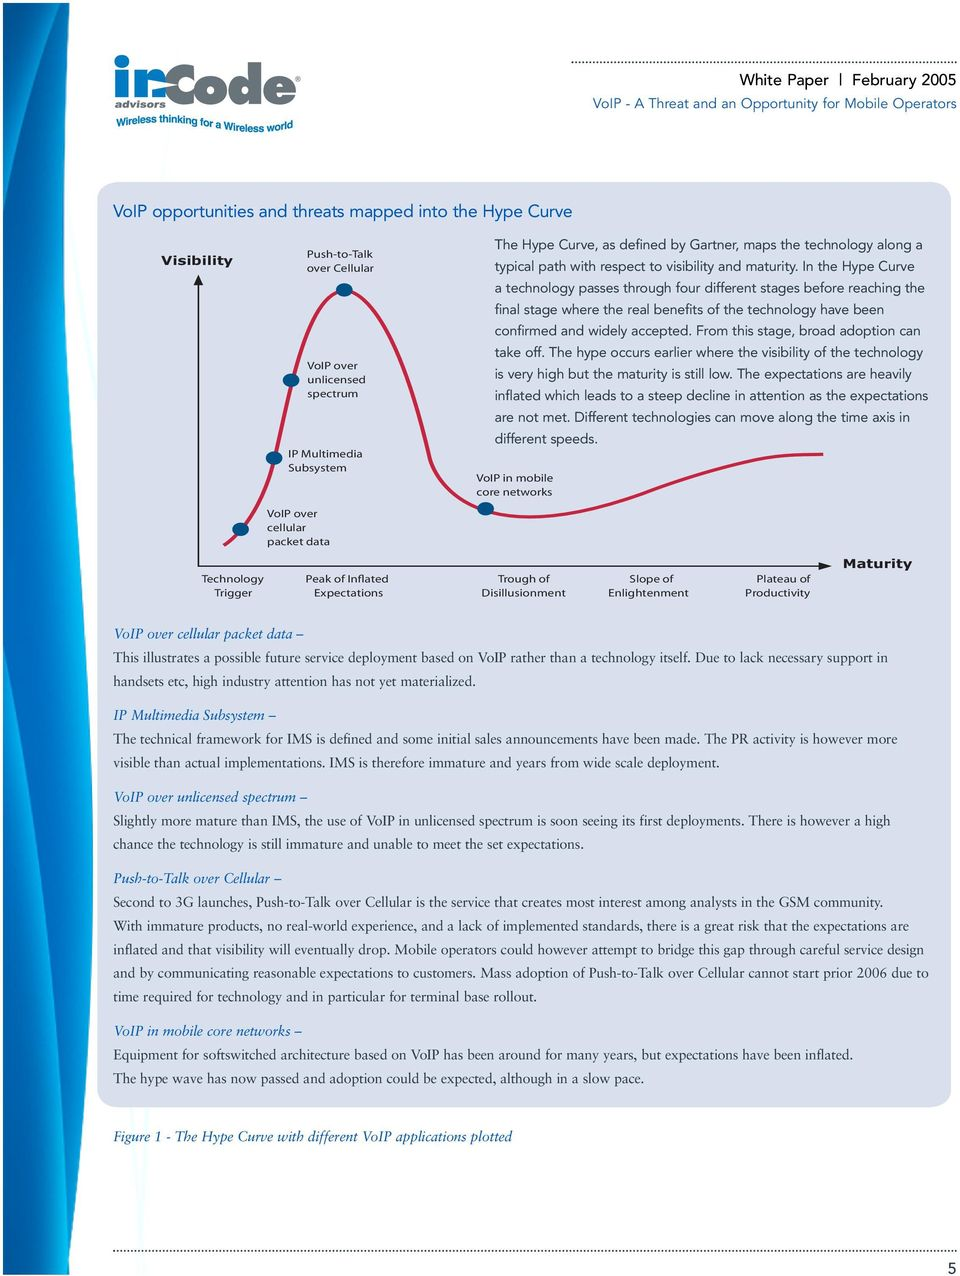 In the Hype Curve a technology passes through four different stages before reaching the final stage where the real benefits of the technology have been confirmed and widely accepted.